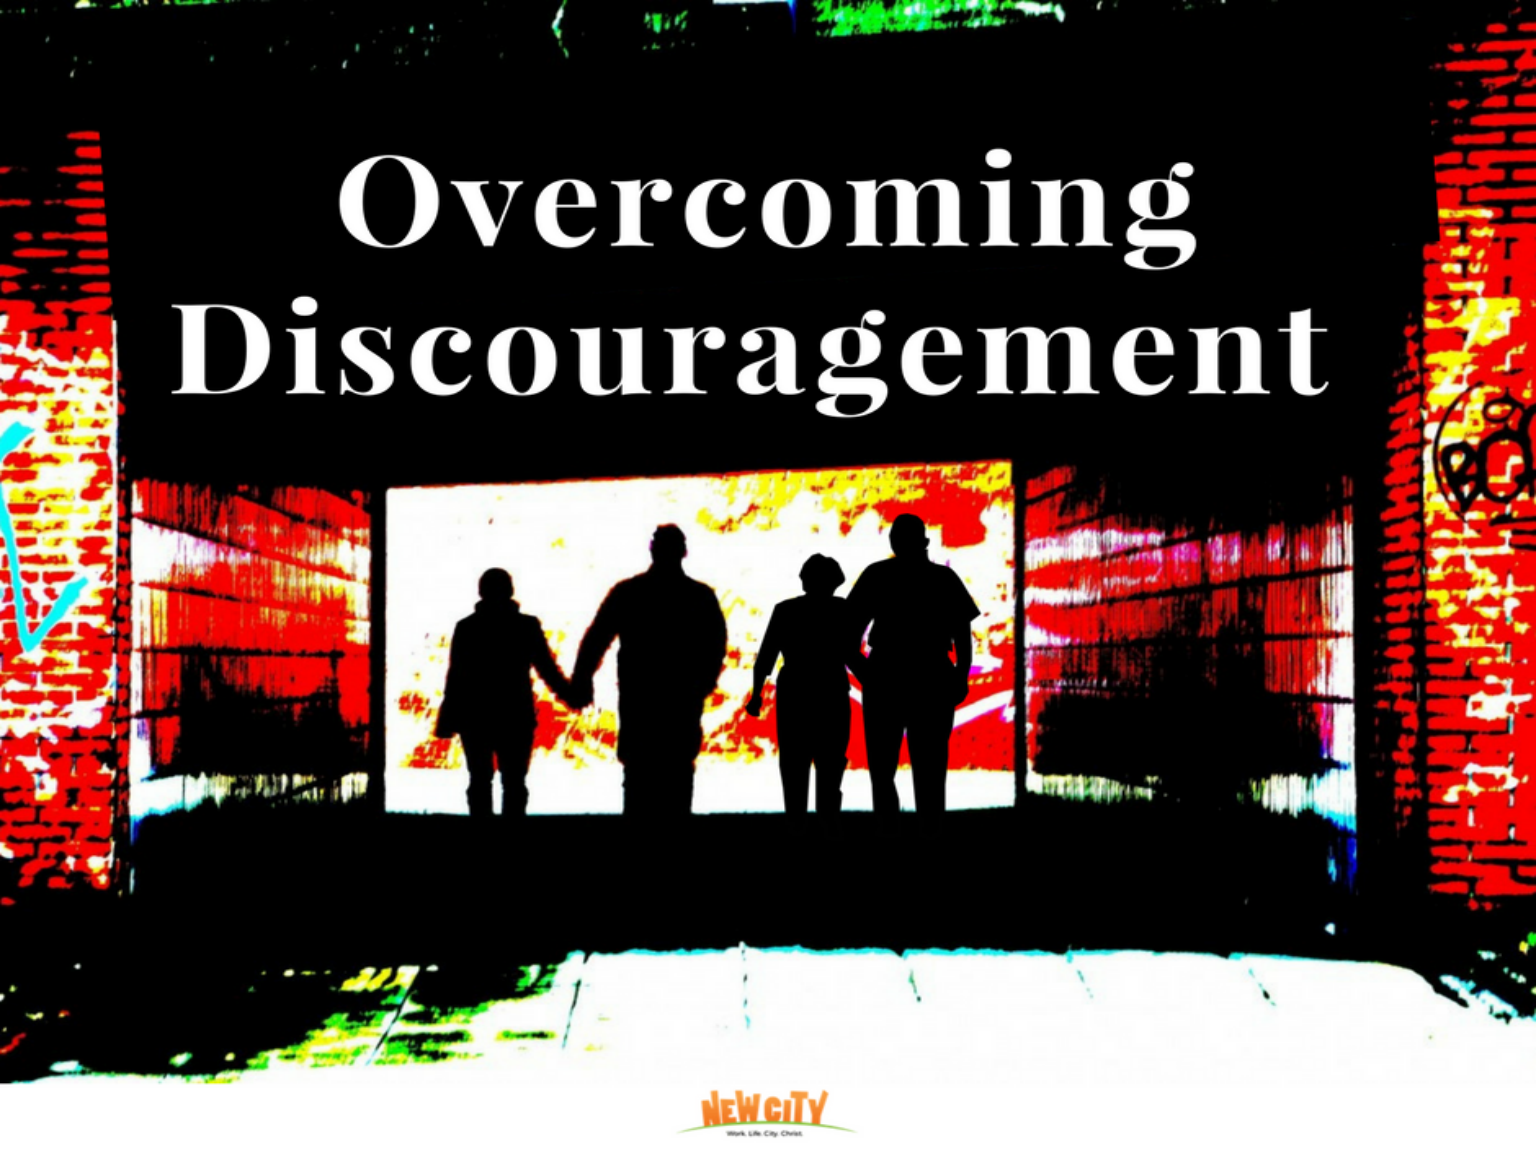 Overcoming Discouragement - Steven Kanga Image